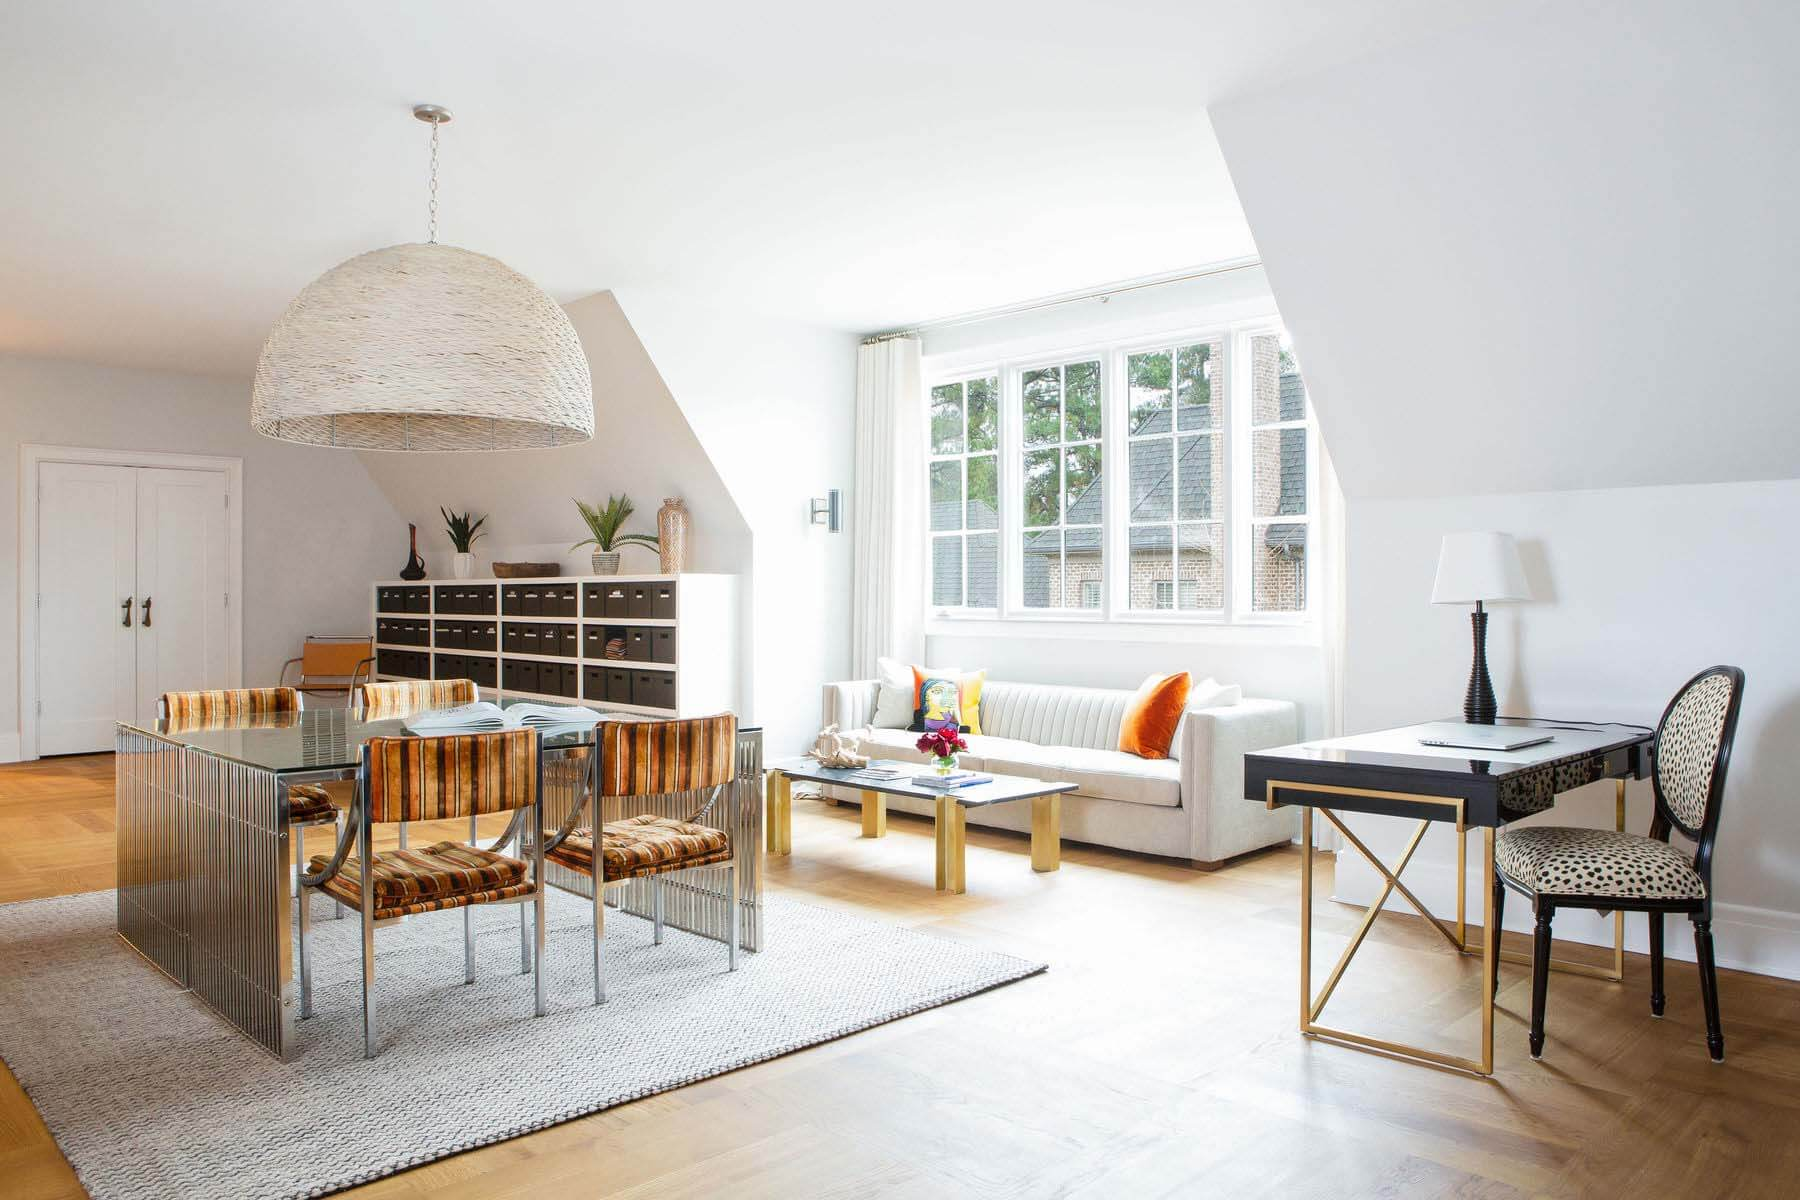 Living space with table, desk and couch